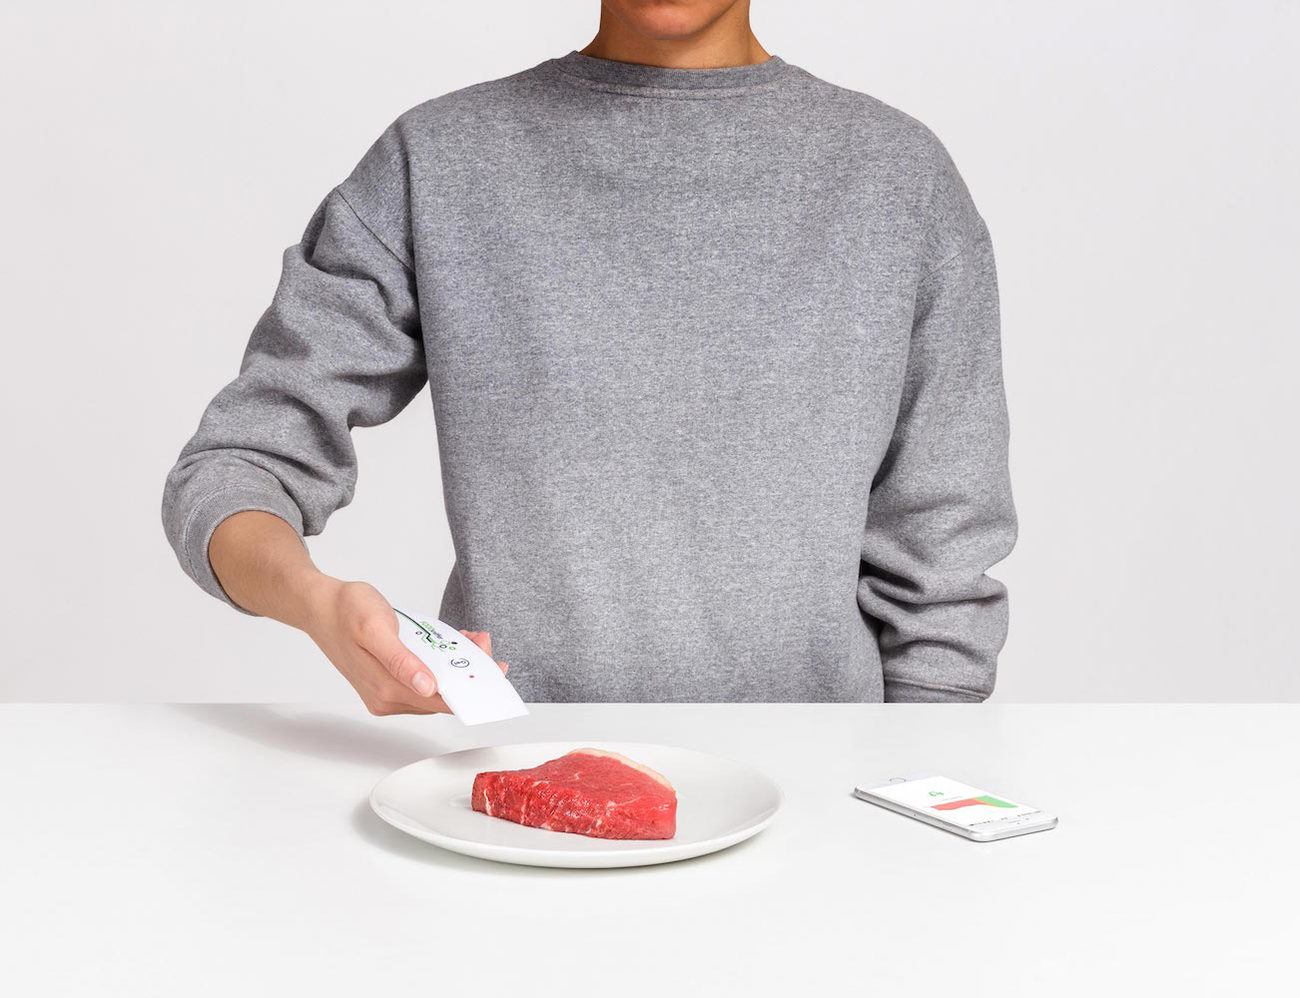 FOODsniffer – A Smart Kitchen Tool To Enjoy Meals Safely